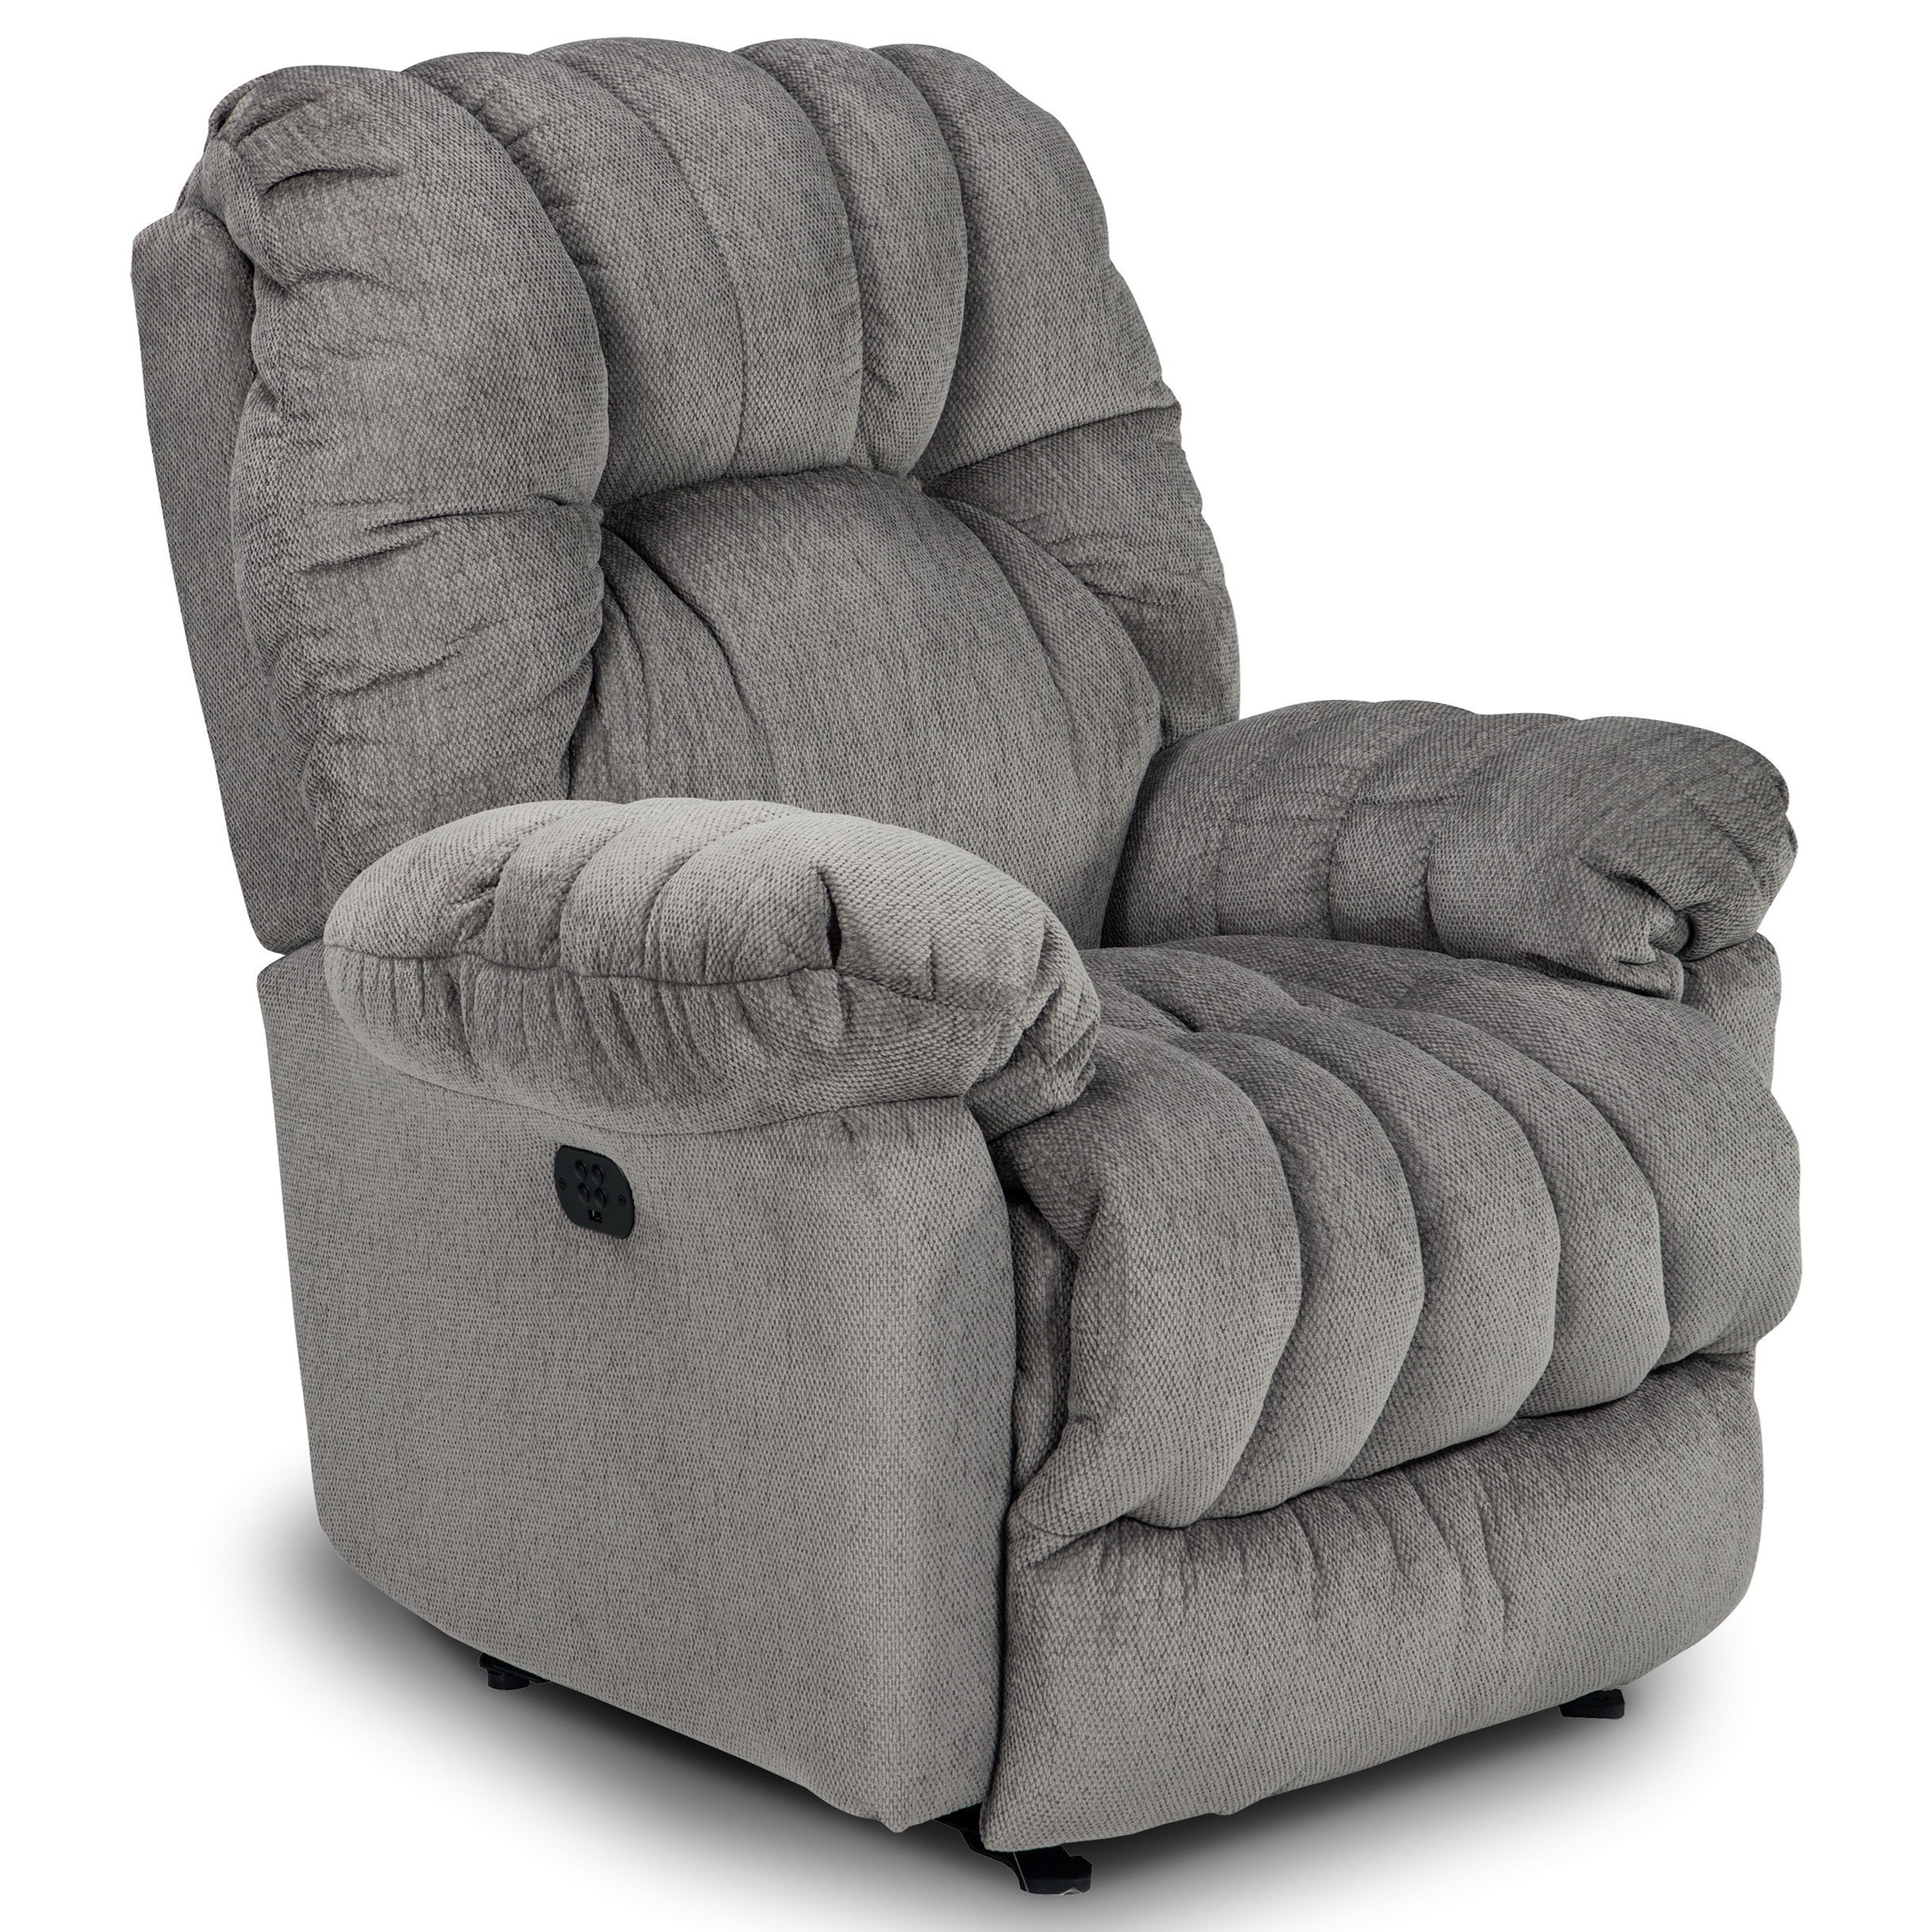 Power Swivel Glider Reclining Chair with Power Headrest and USB Port